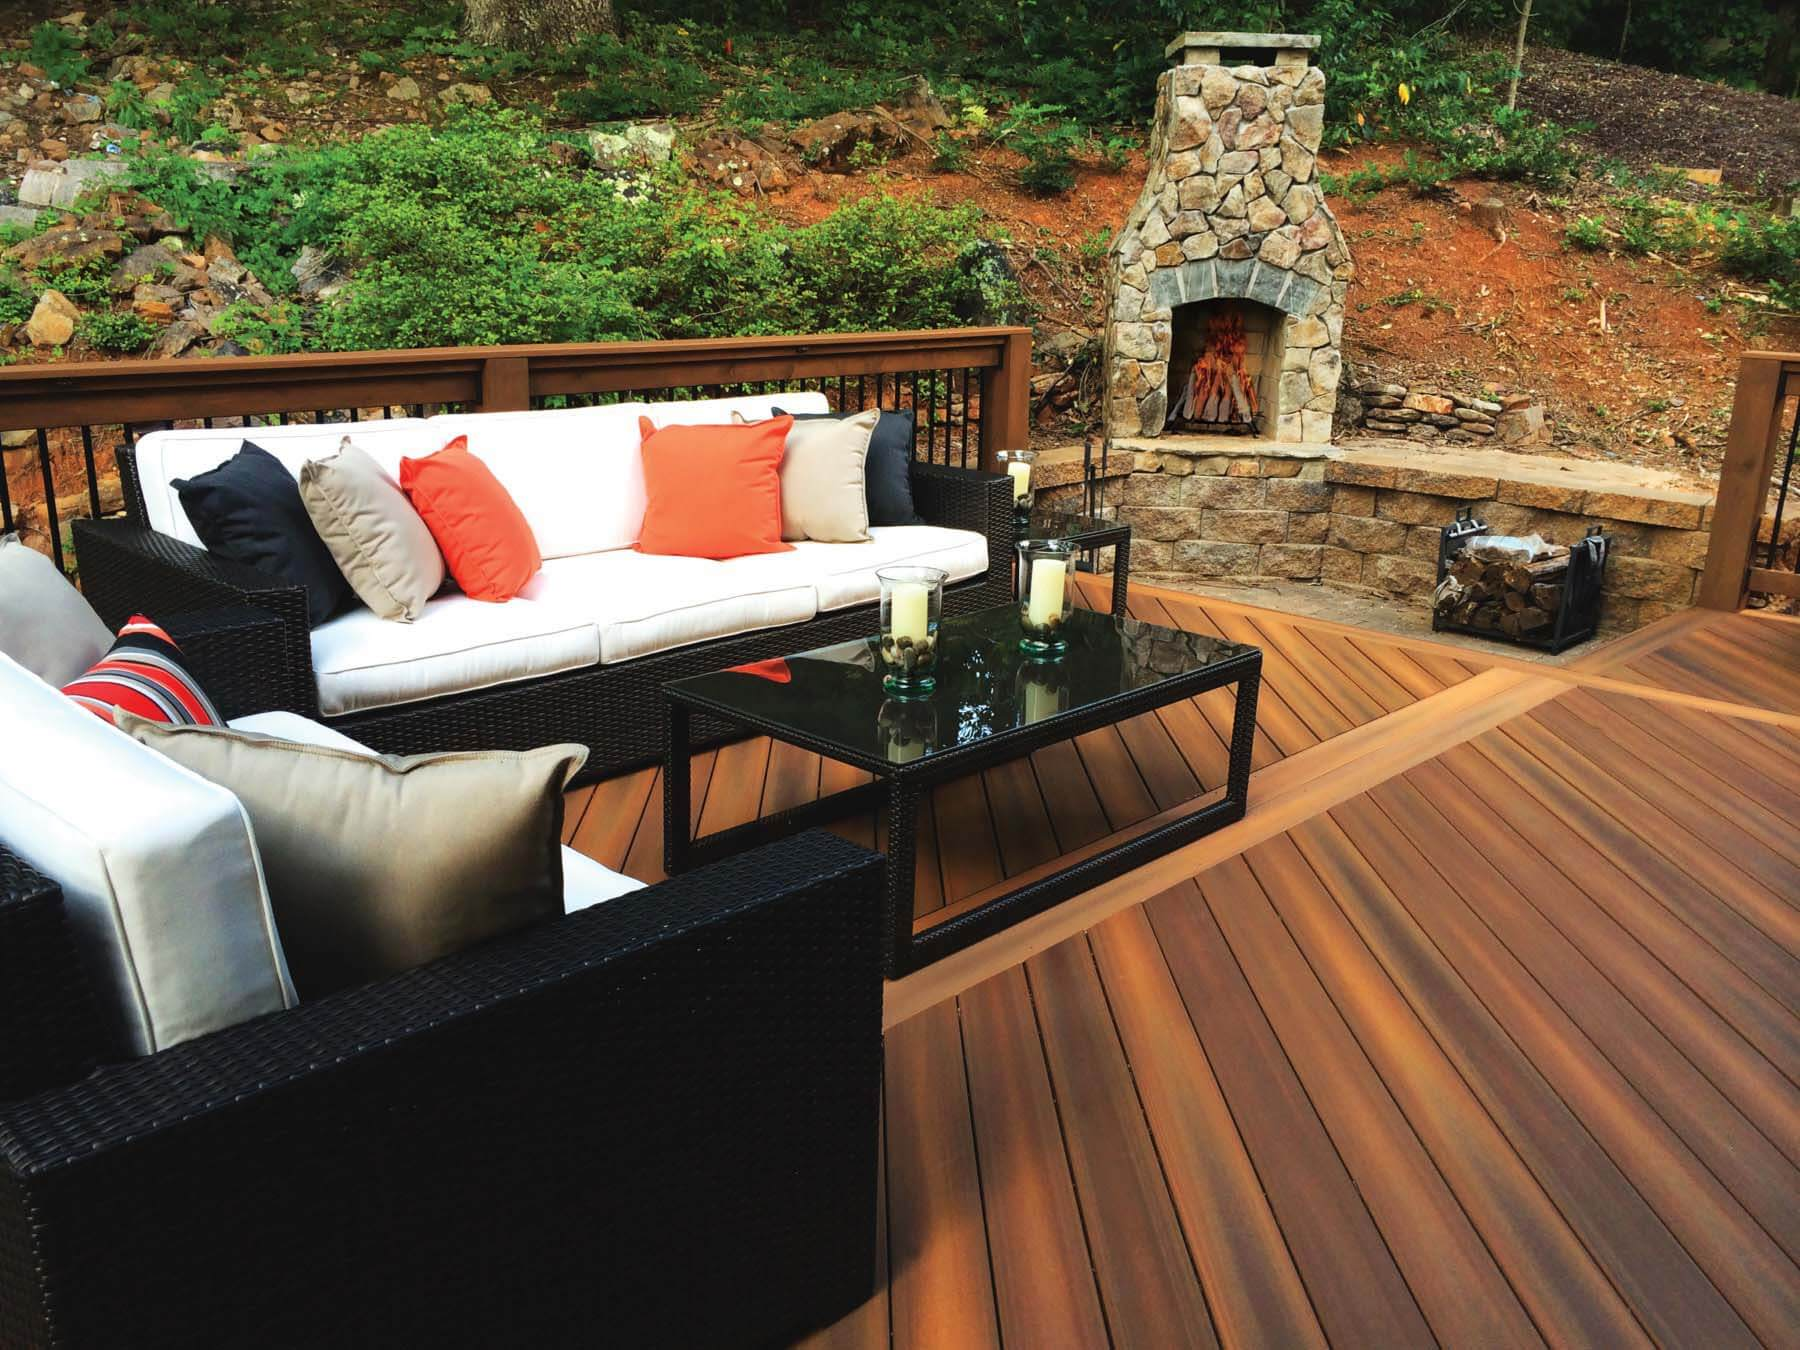 Custom outdoor fireplace by Outback Deck